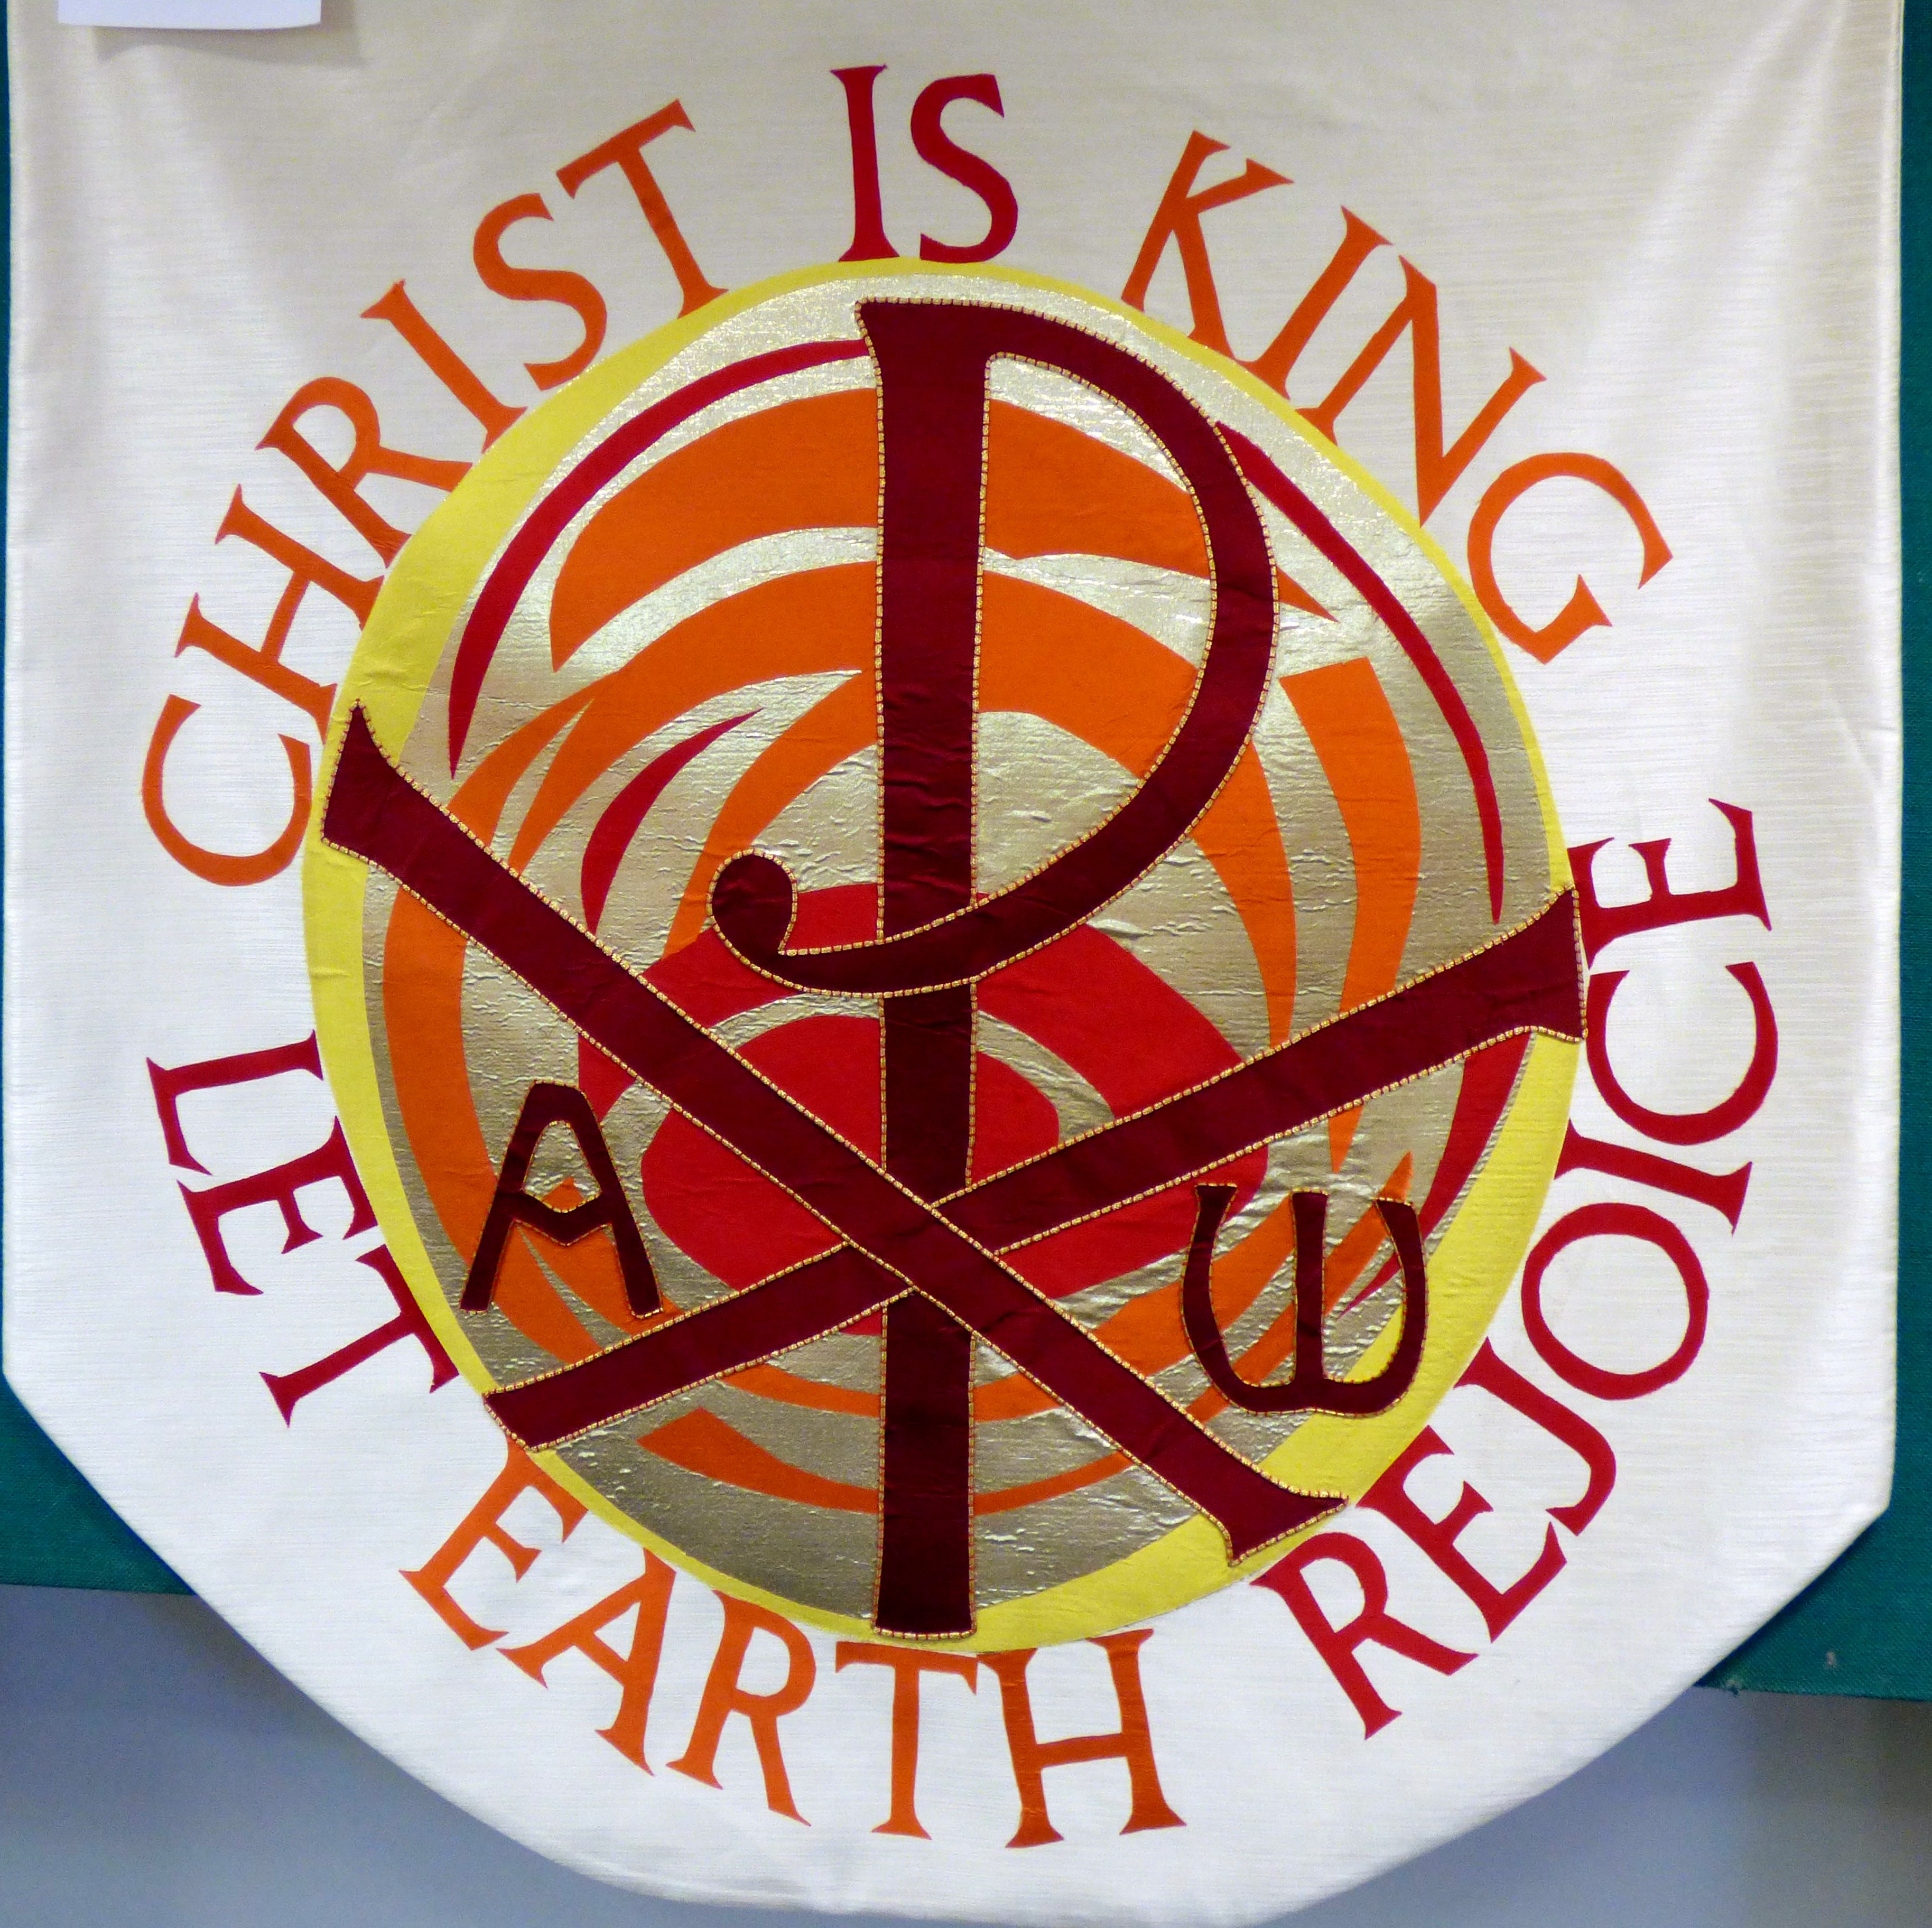 FEAST OF CHRIST THE KING ALTAR FRONTAL at  Embroidery Studio open day, Liverpool Metropolitan Cathedral 2017